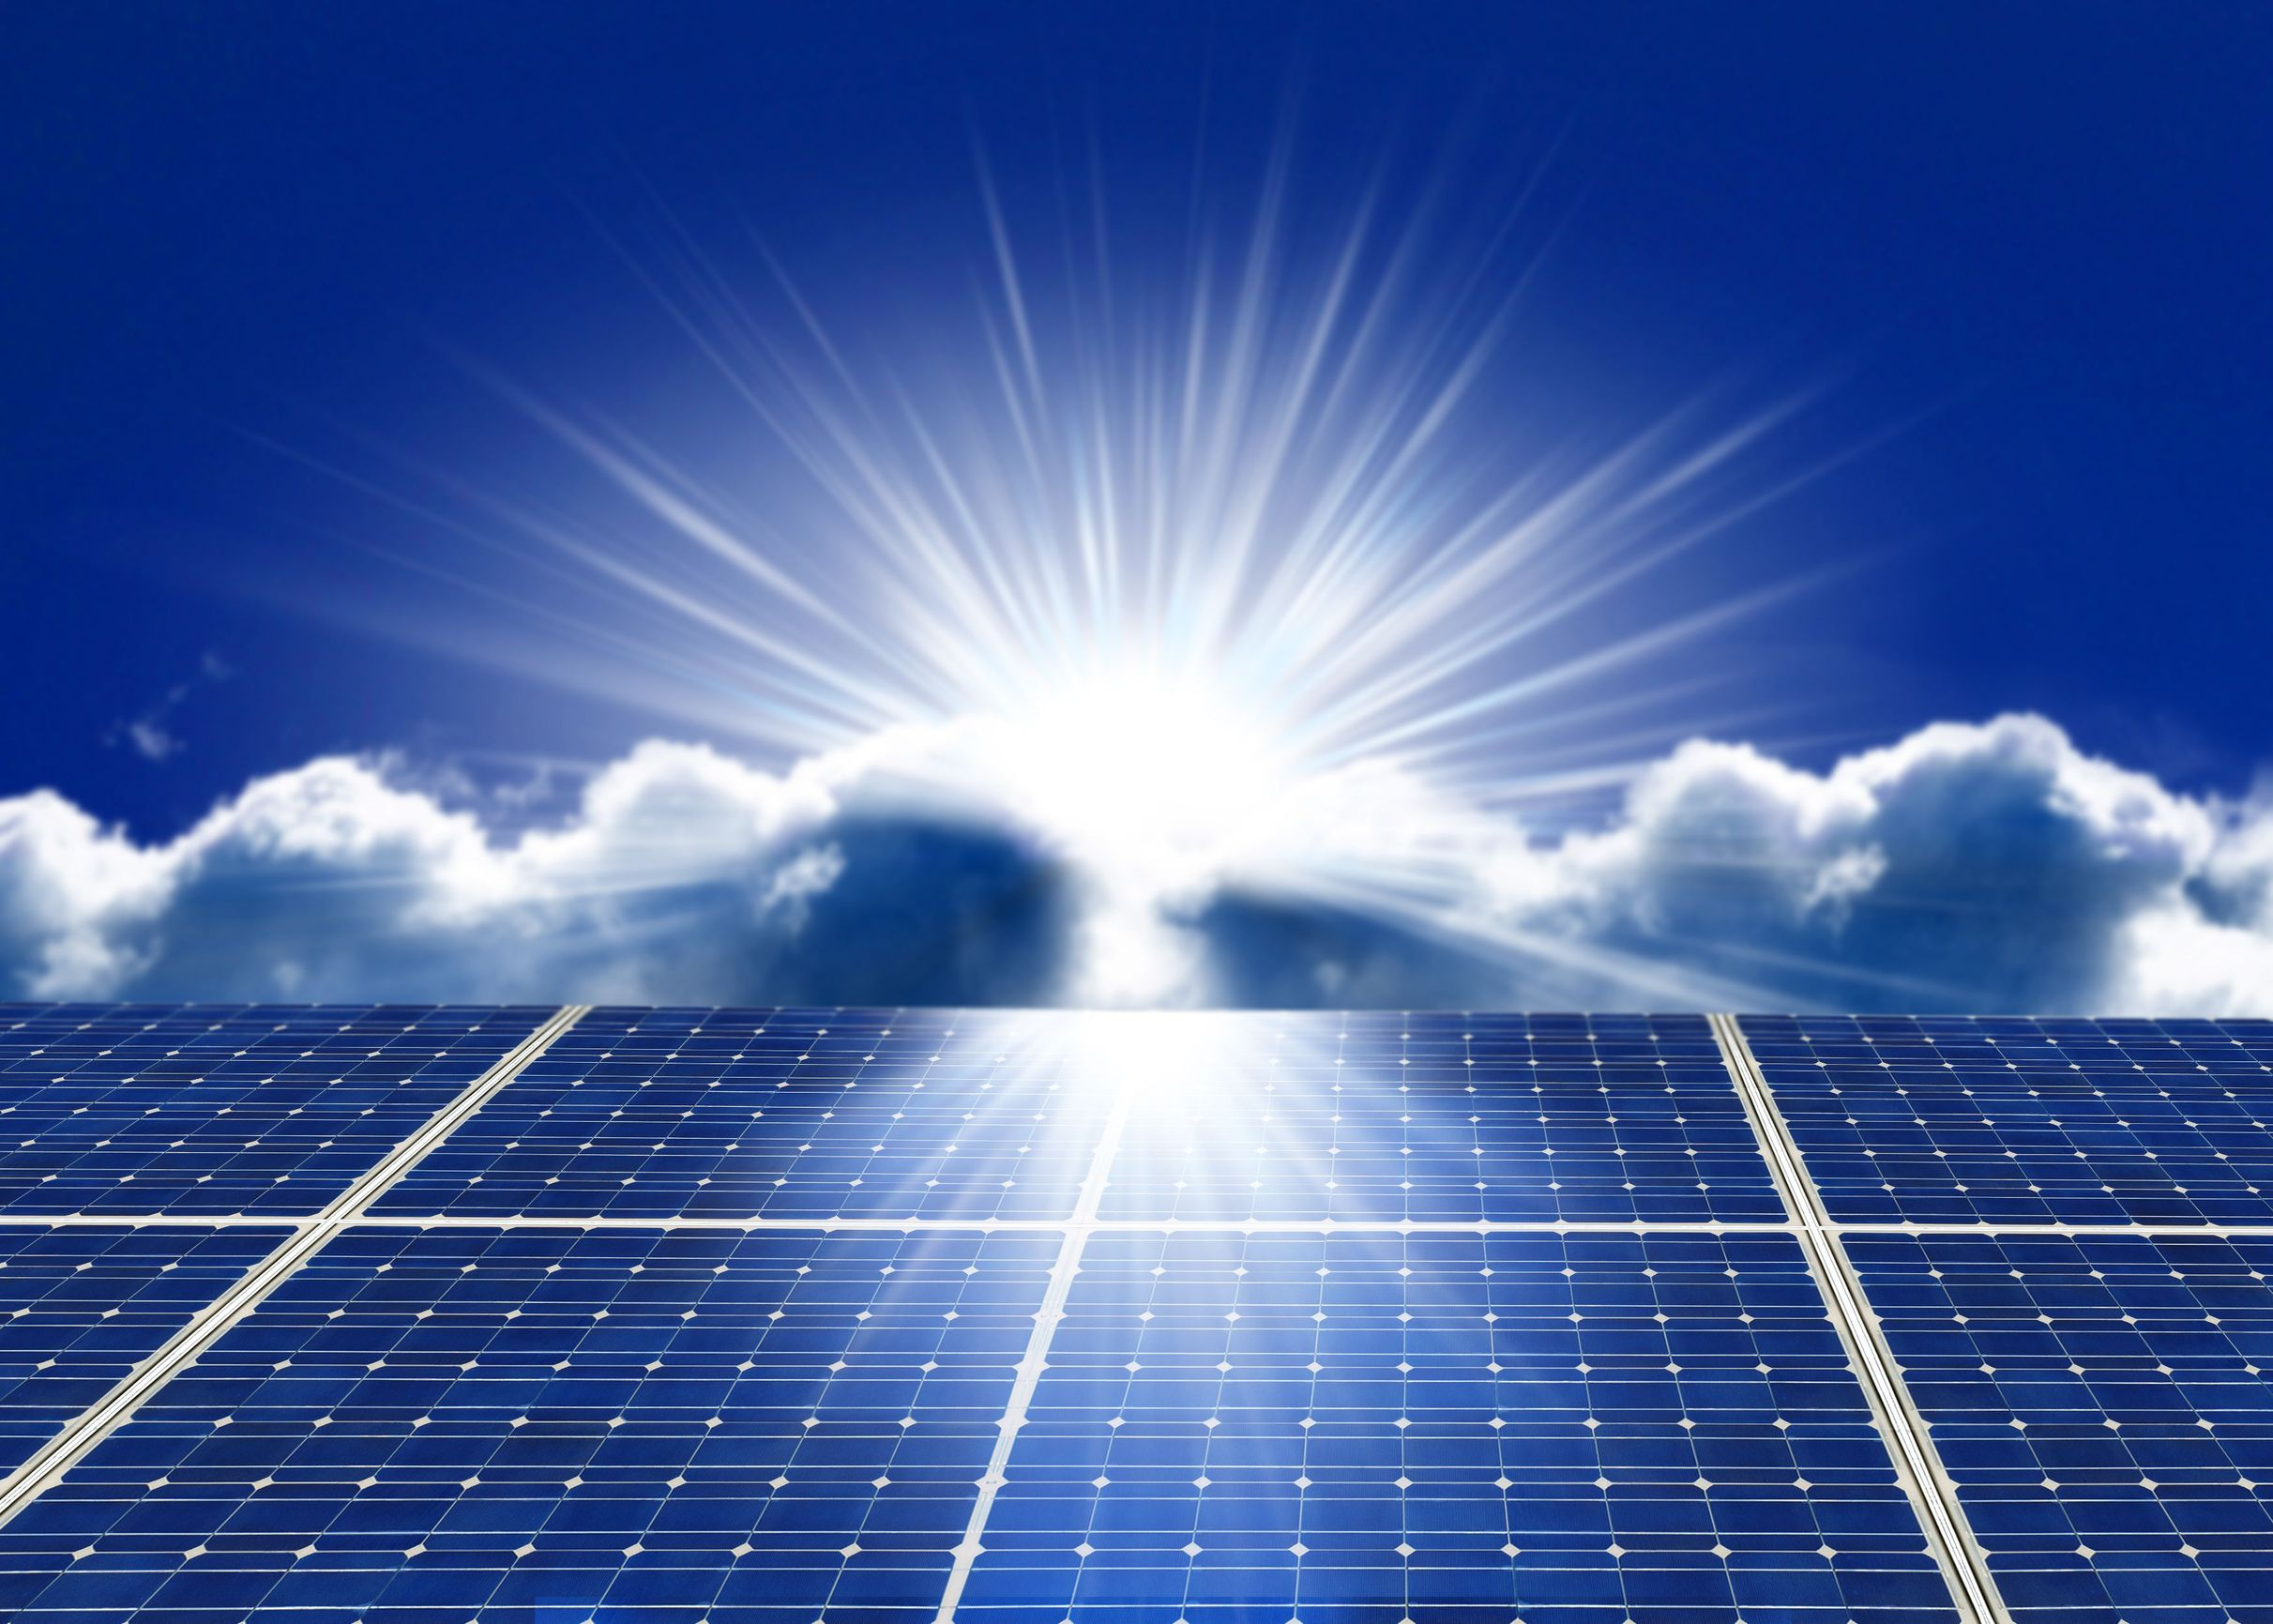 Http Www Africa Ontherise Com Nigeria Egypt And South Africa Leading In Production Of Solar Panels In Africa